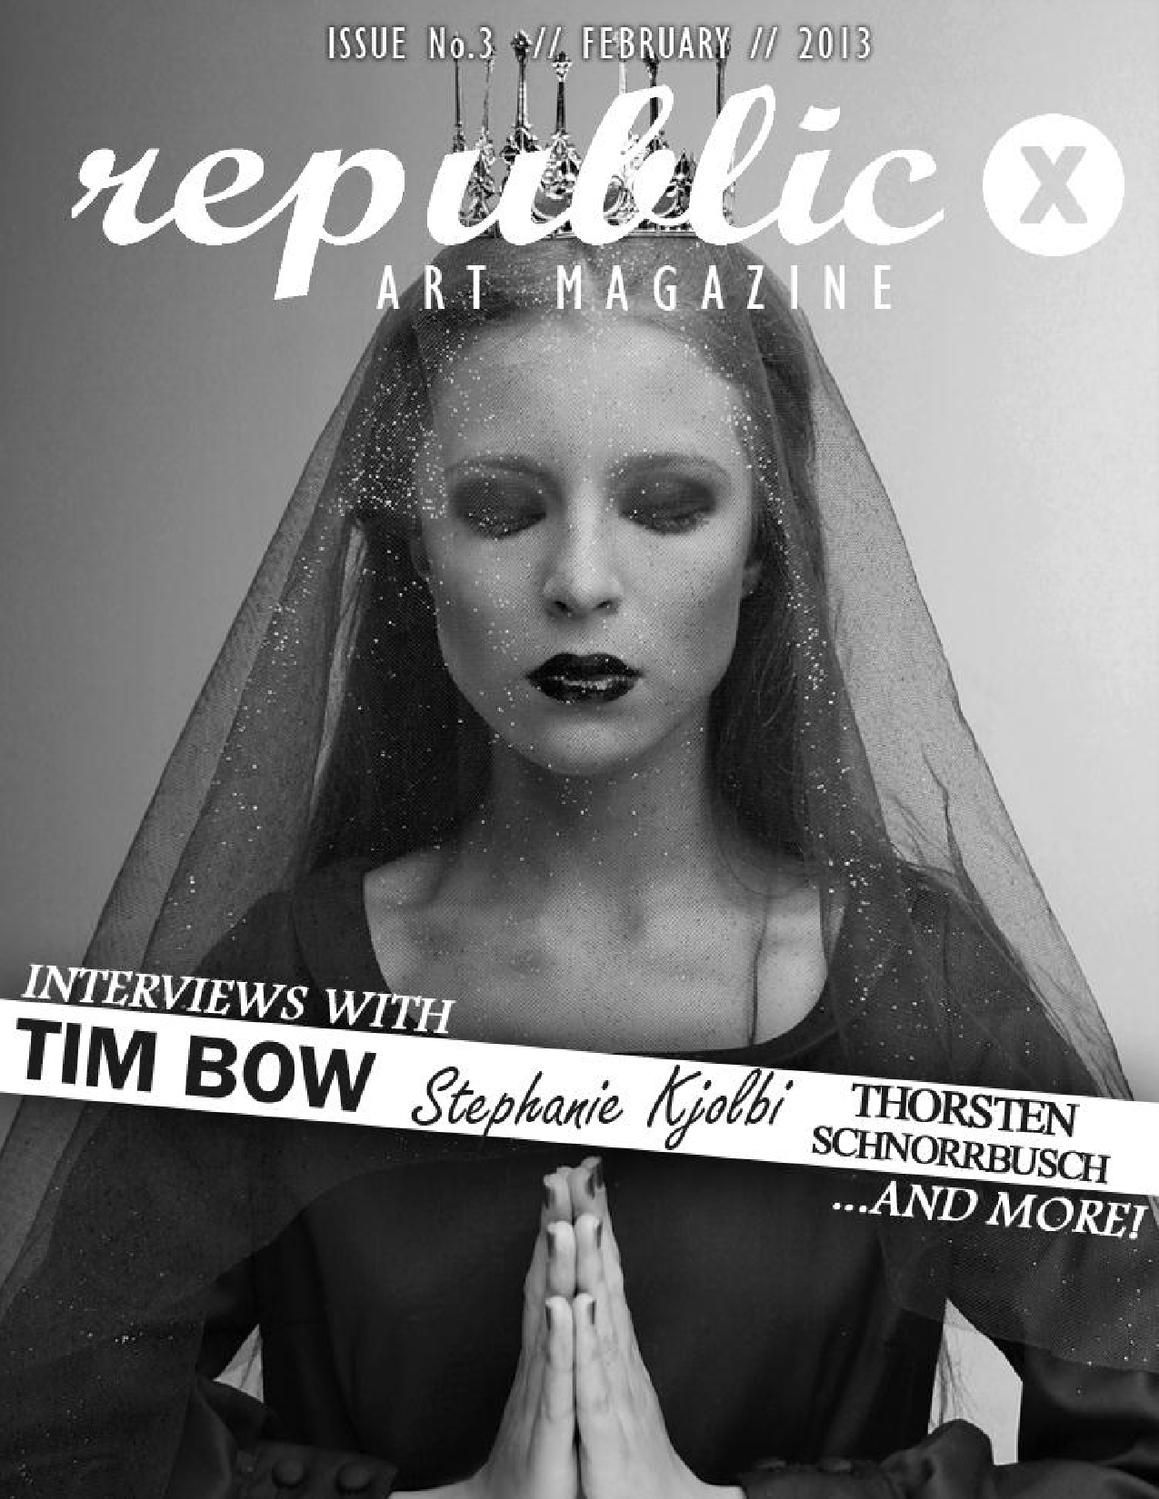 REPUBLIC X - Art Magazine - ISSUE 3  ART MAGAZINE // Issue No3